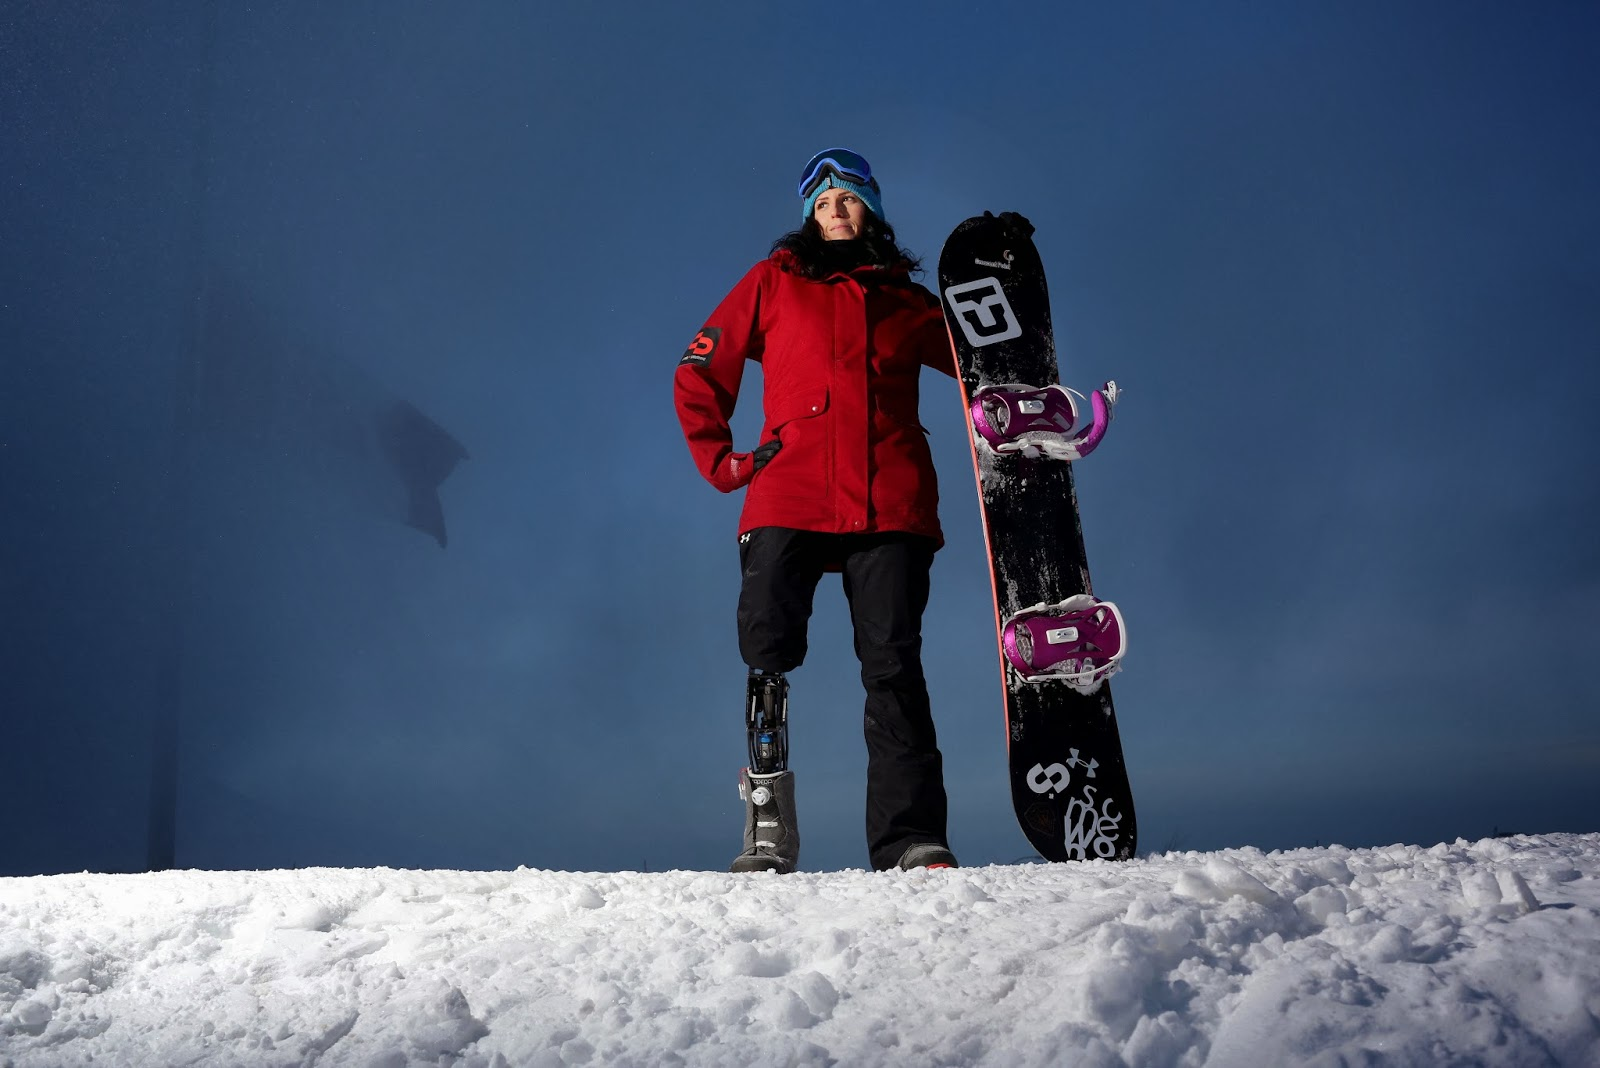 picture of michelle in snow with her snowboard. She is a right leg amputee and is wearing a prostetic leg.